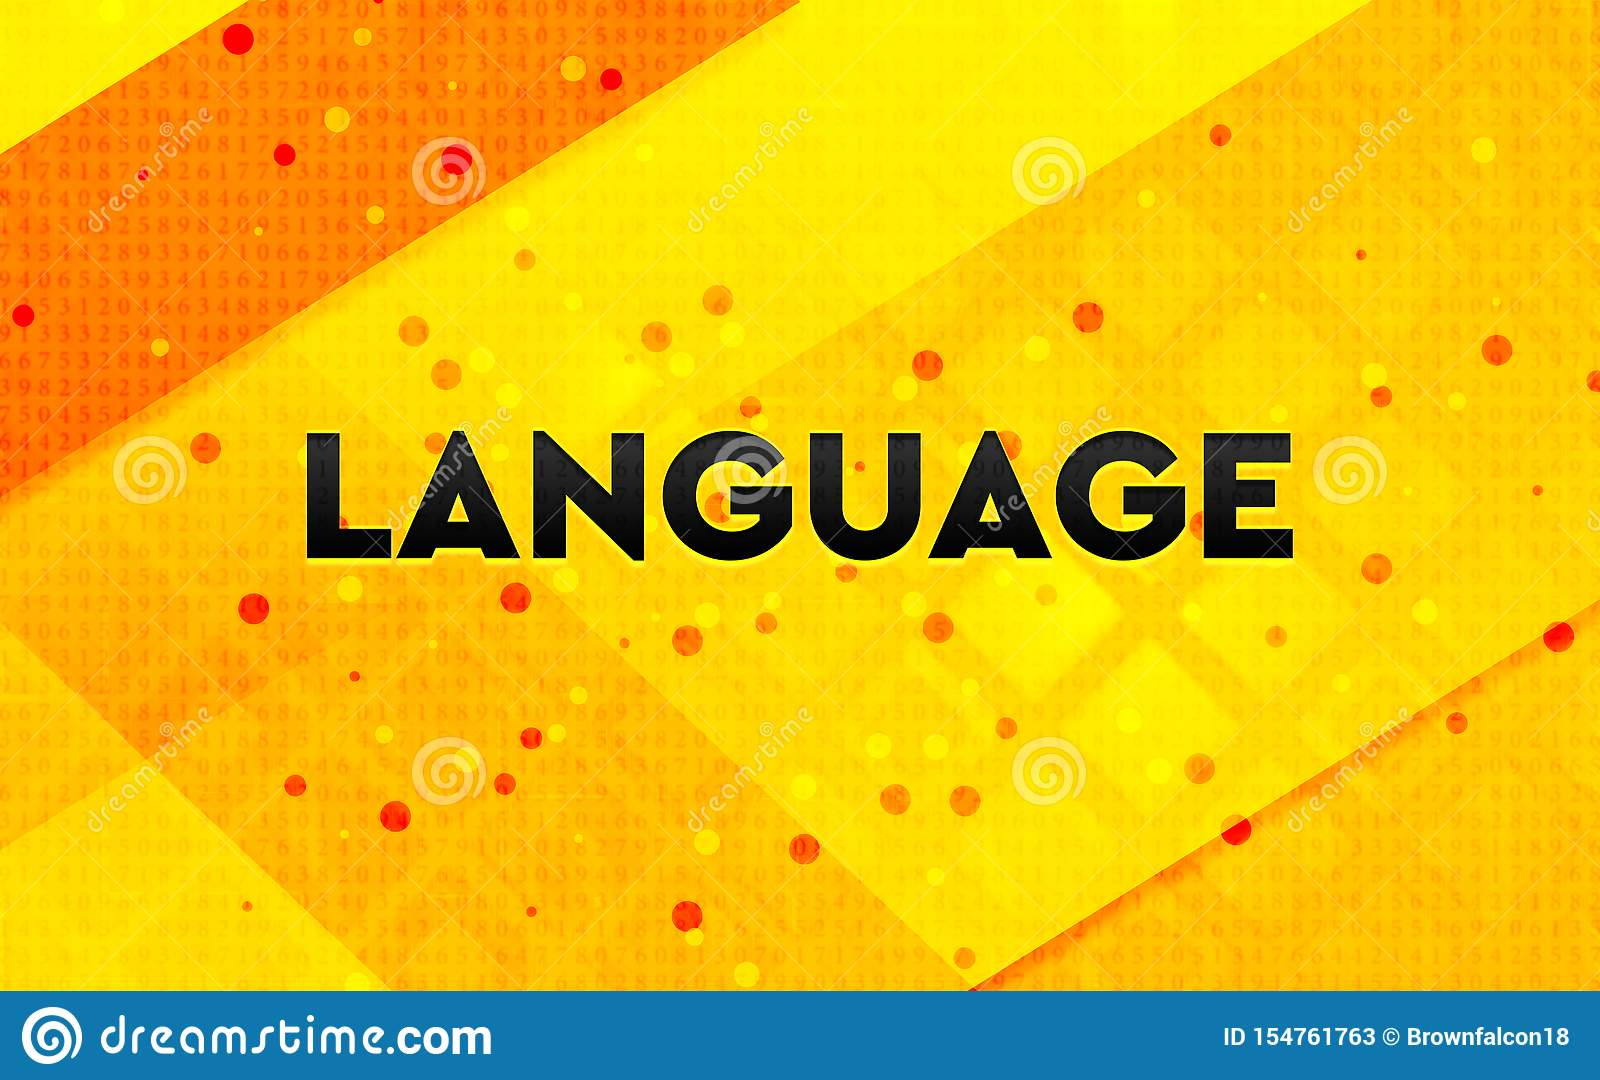 Language Abstract Digital Banner Yellow Background Stock